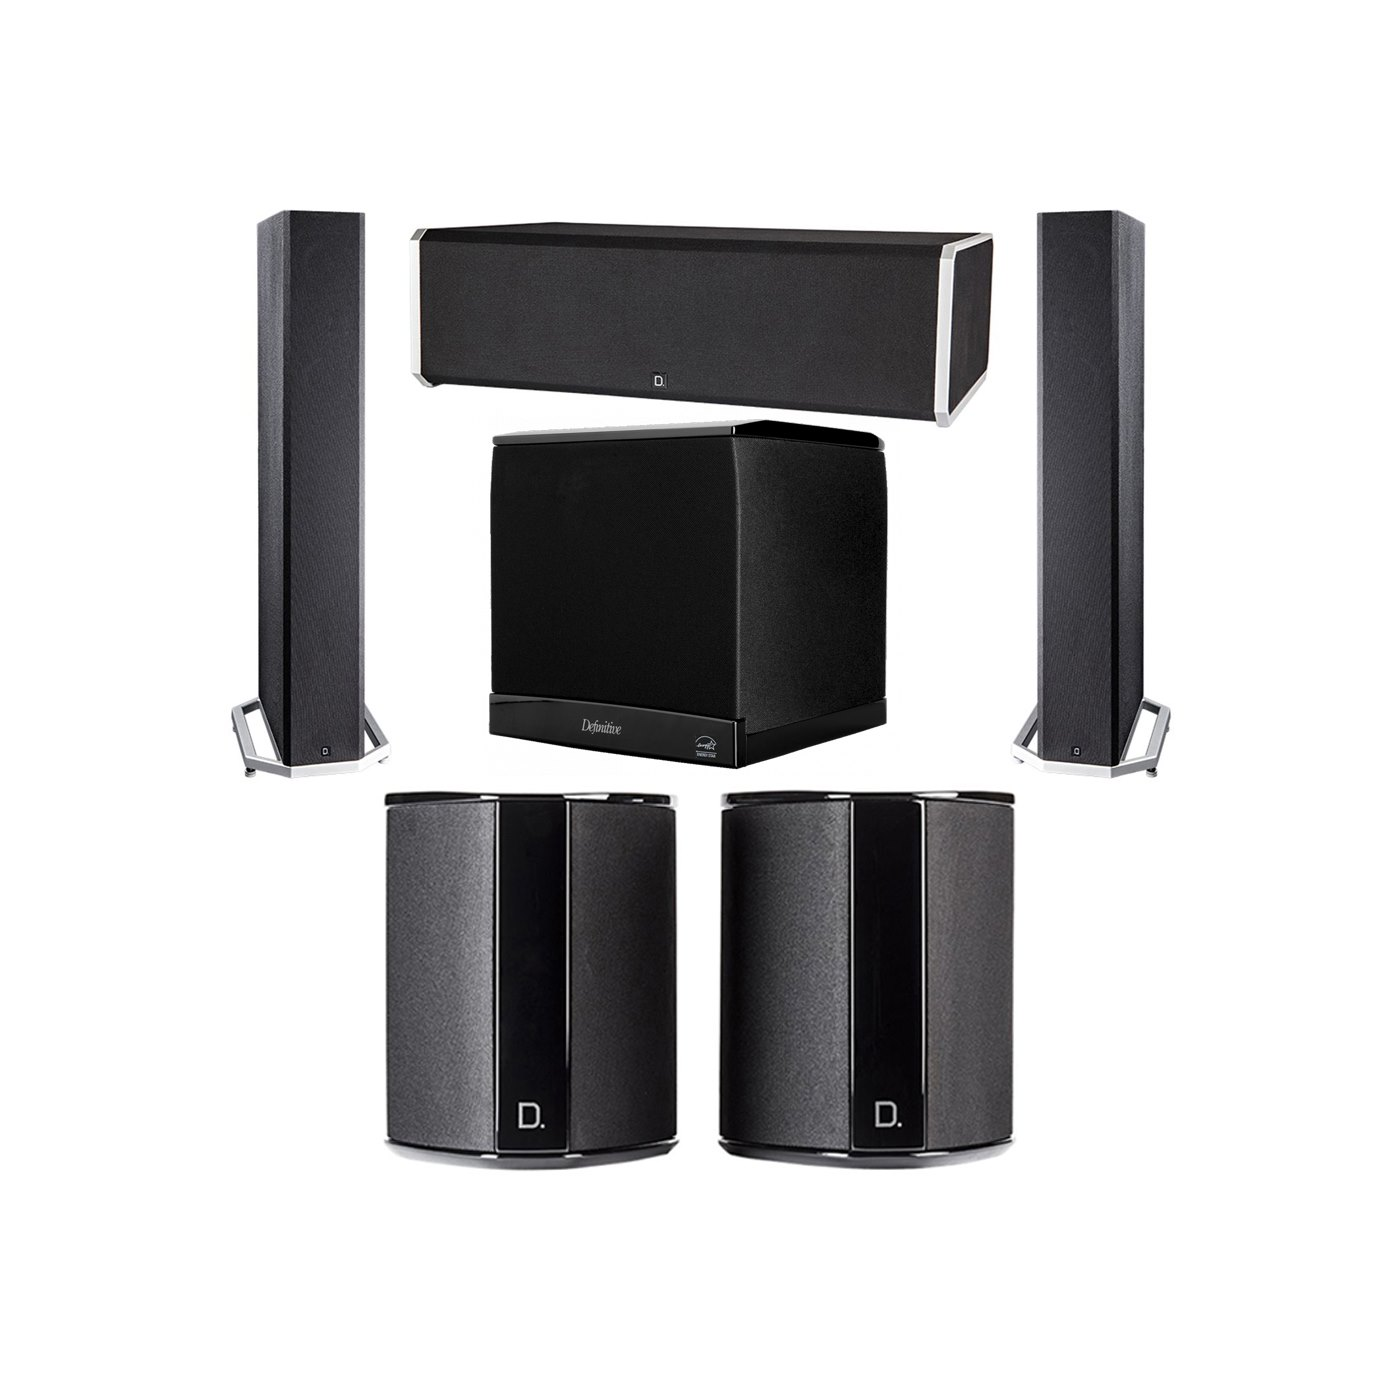 Definitive Technology 5.1 System with 2 BP9040 Tower Speakers, 1 CS9080 Center Channel Speaker, 2 SR9040 Surround Speaker, 1 Definitive Technology SuperCube 4000 Powered Subwoofer